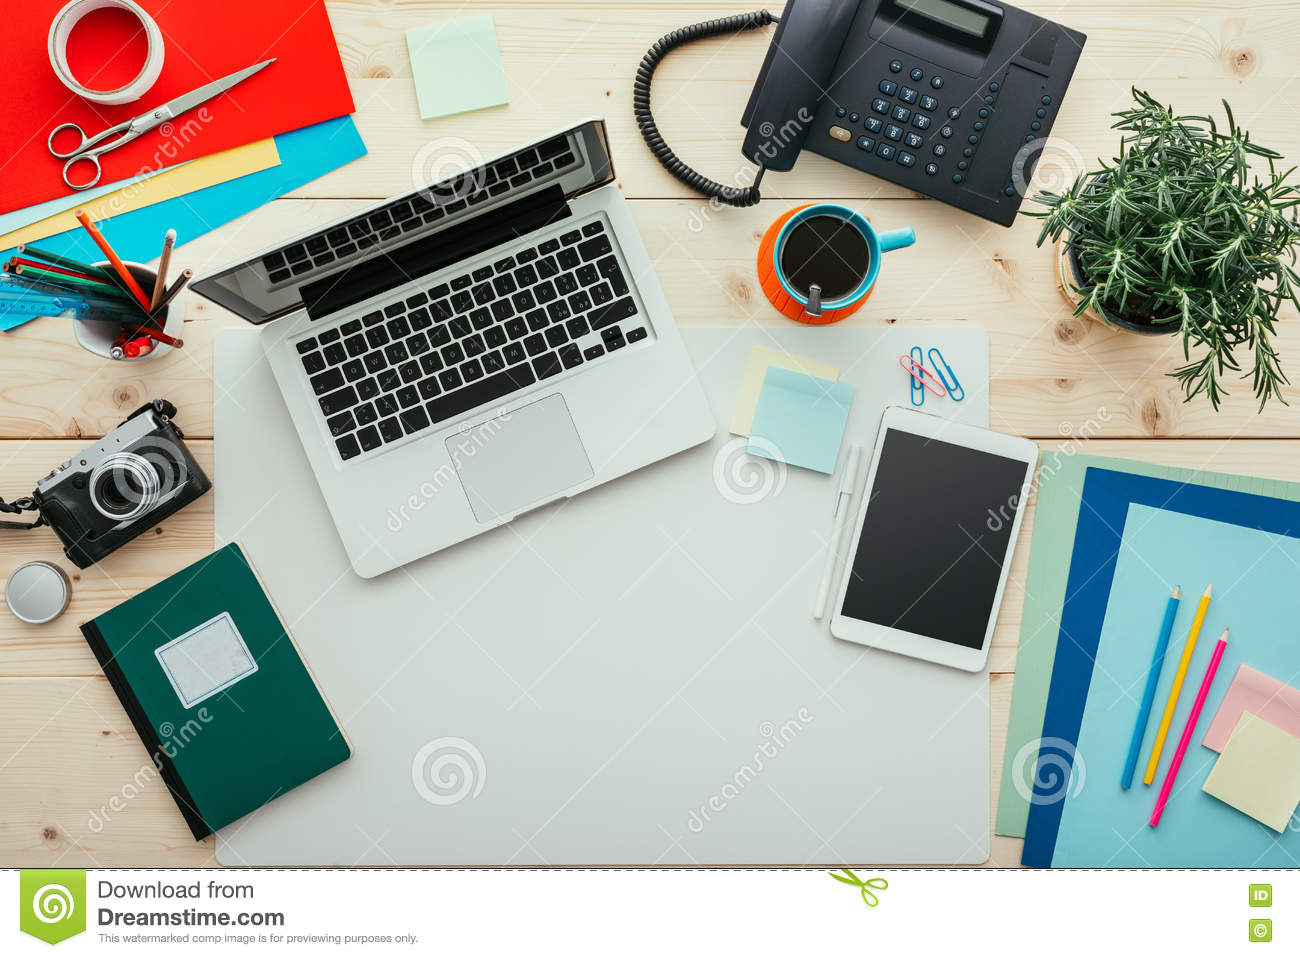 creative office supplies minimalist art creative office stock photo image of computer objects 81697484